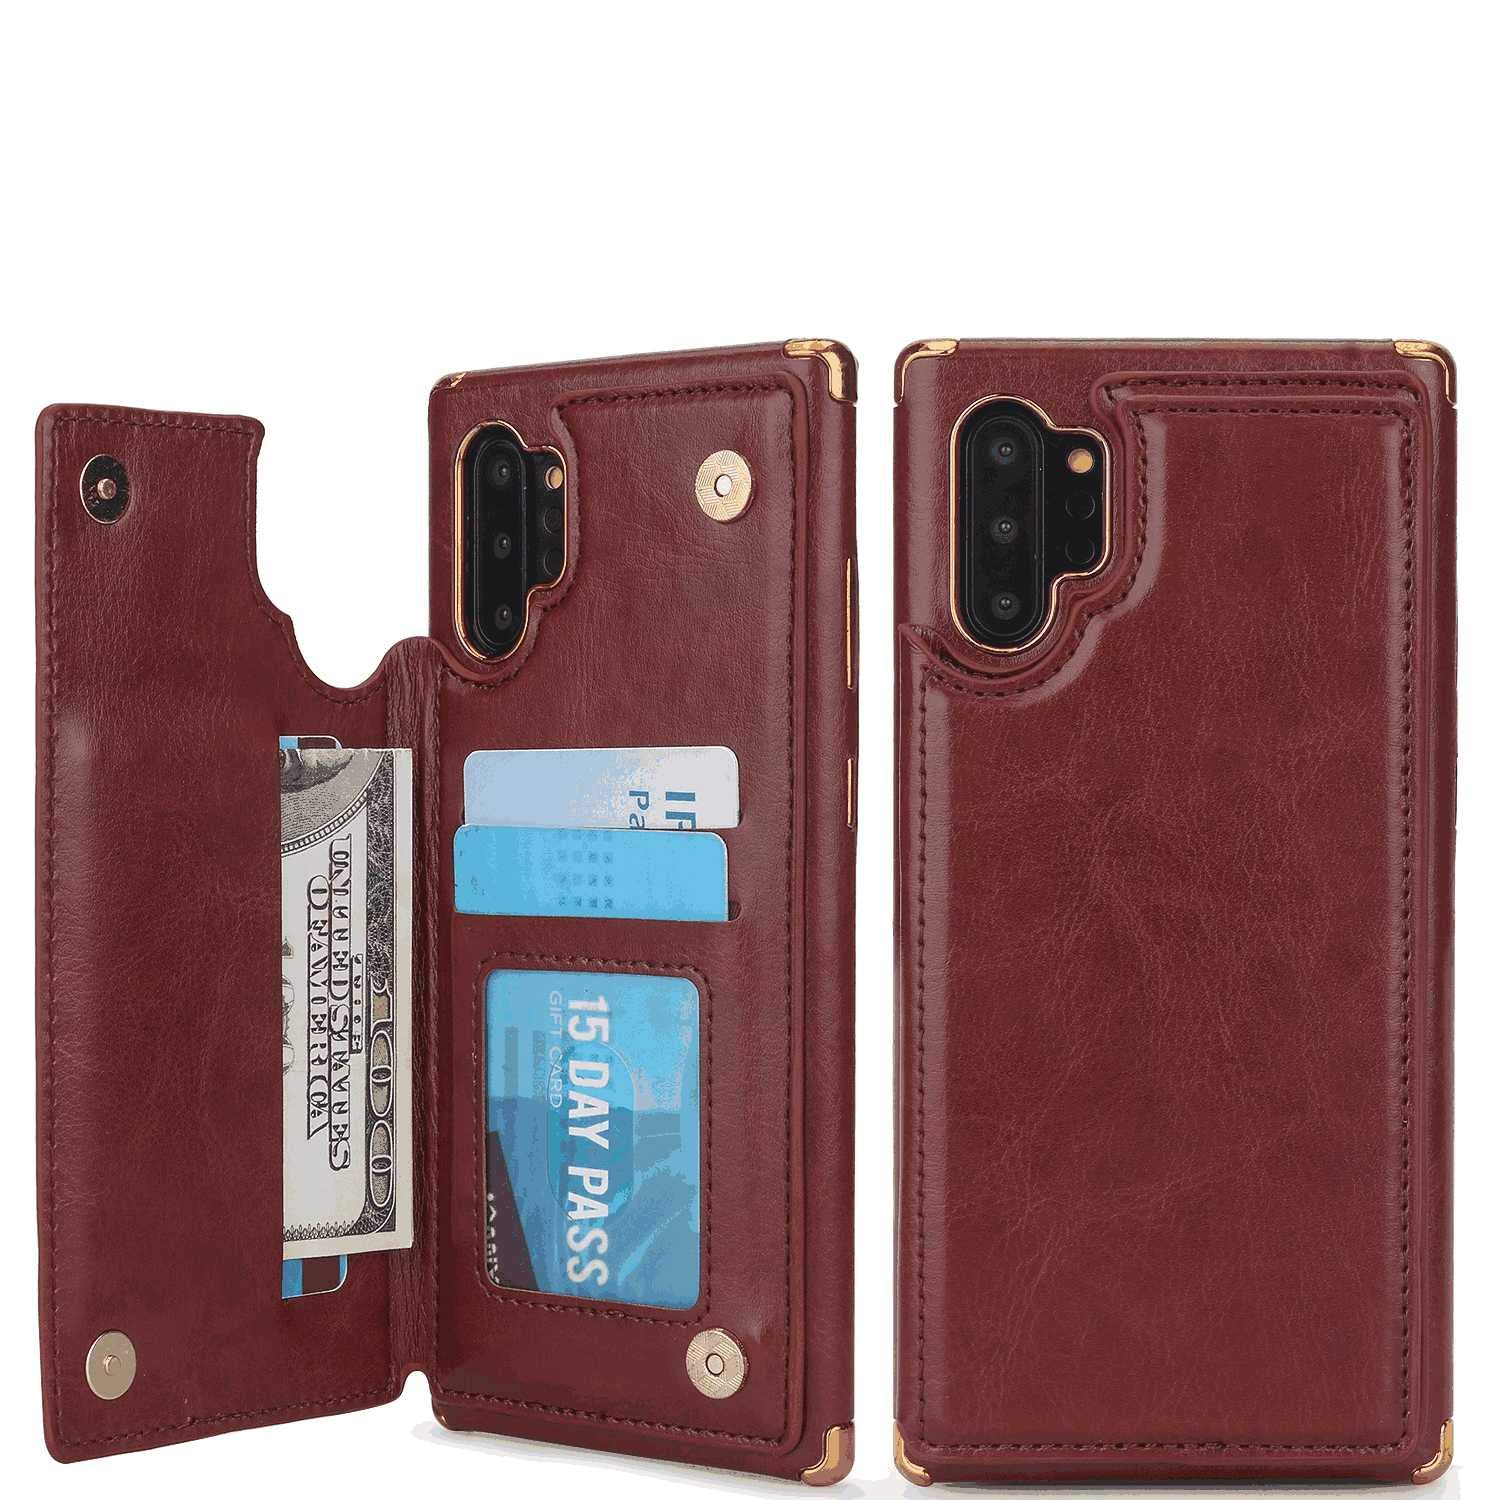 Cover for iPhone 8 Leather Extra-Shockproof Business Wallet case Card Holders Kickstand with Free Waterproof-Bag Delicate iPhone 8 Flip Case